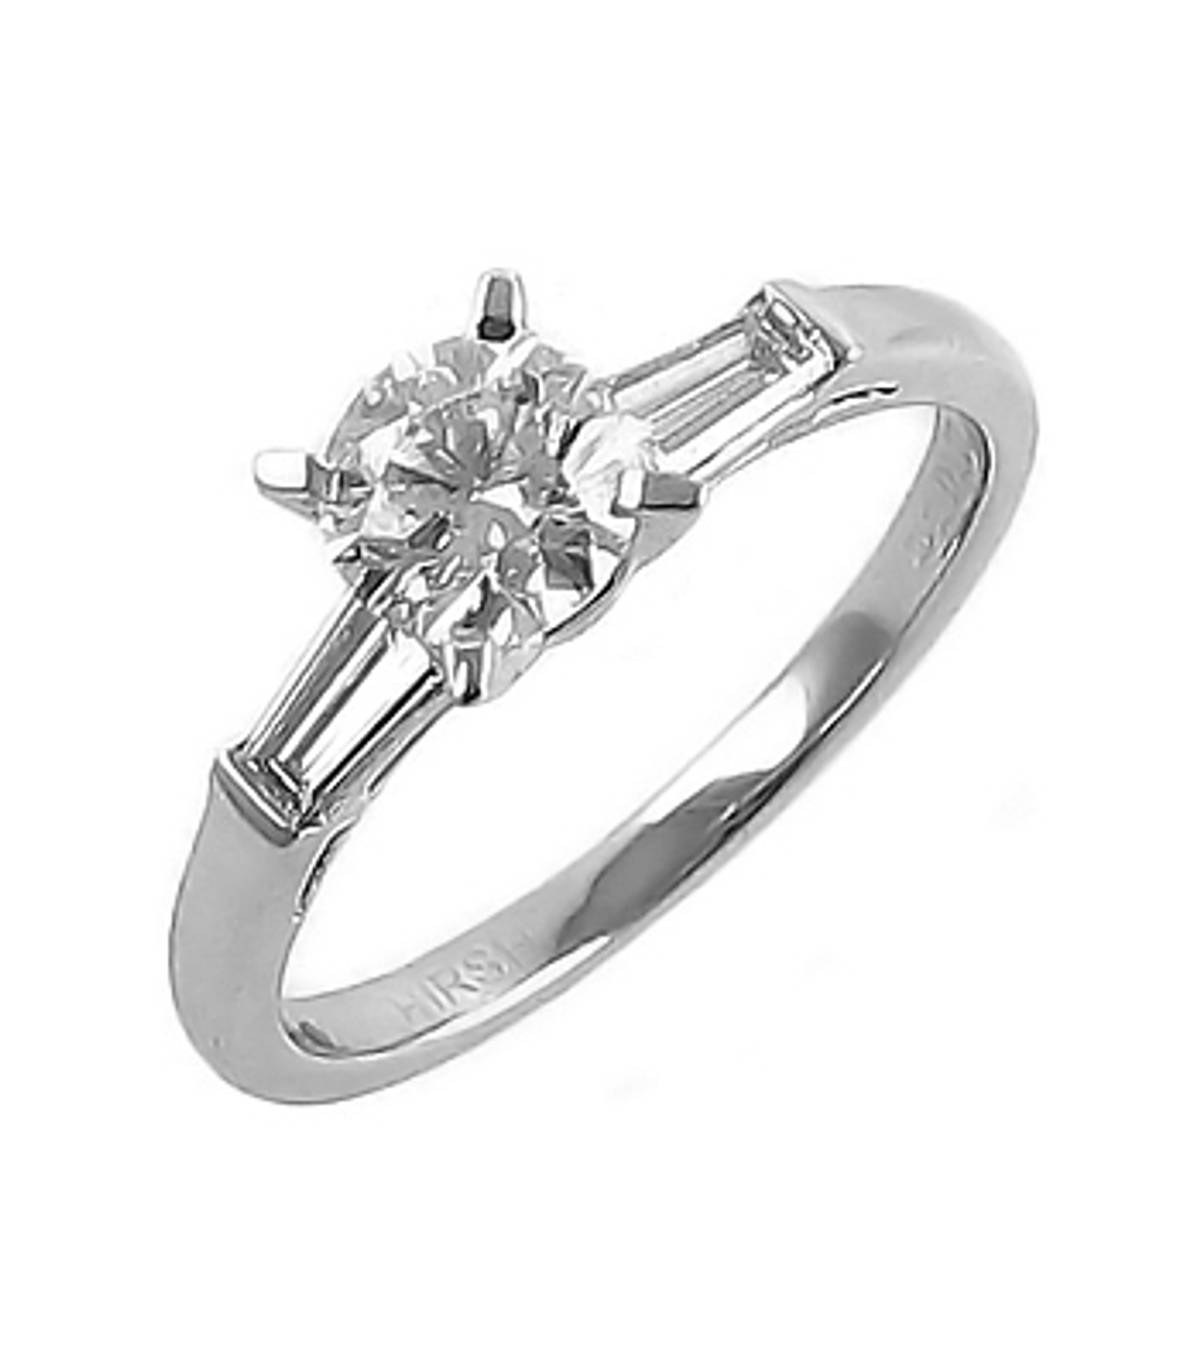 Irish madebrilliant cut diamond solitaire engagement ring with baguette diamond shoulders with 0.66 carat brilliant cut centre diamond with 0.14 carat baguette cut diamonds in shoulders set in platinum